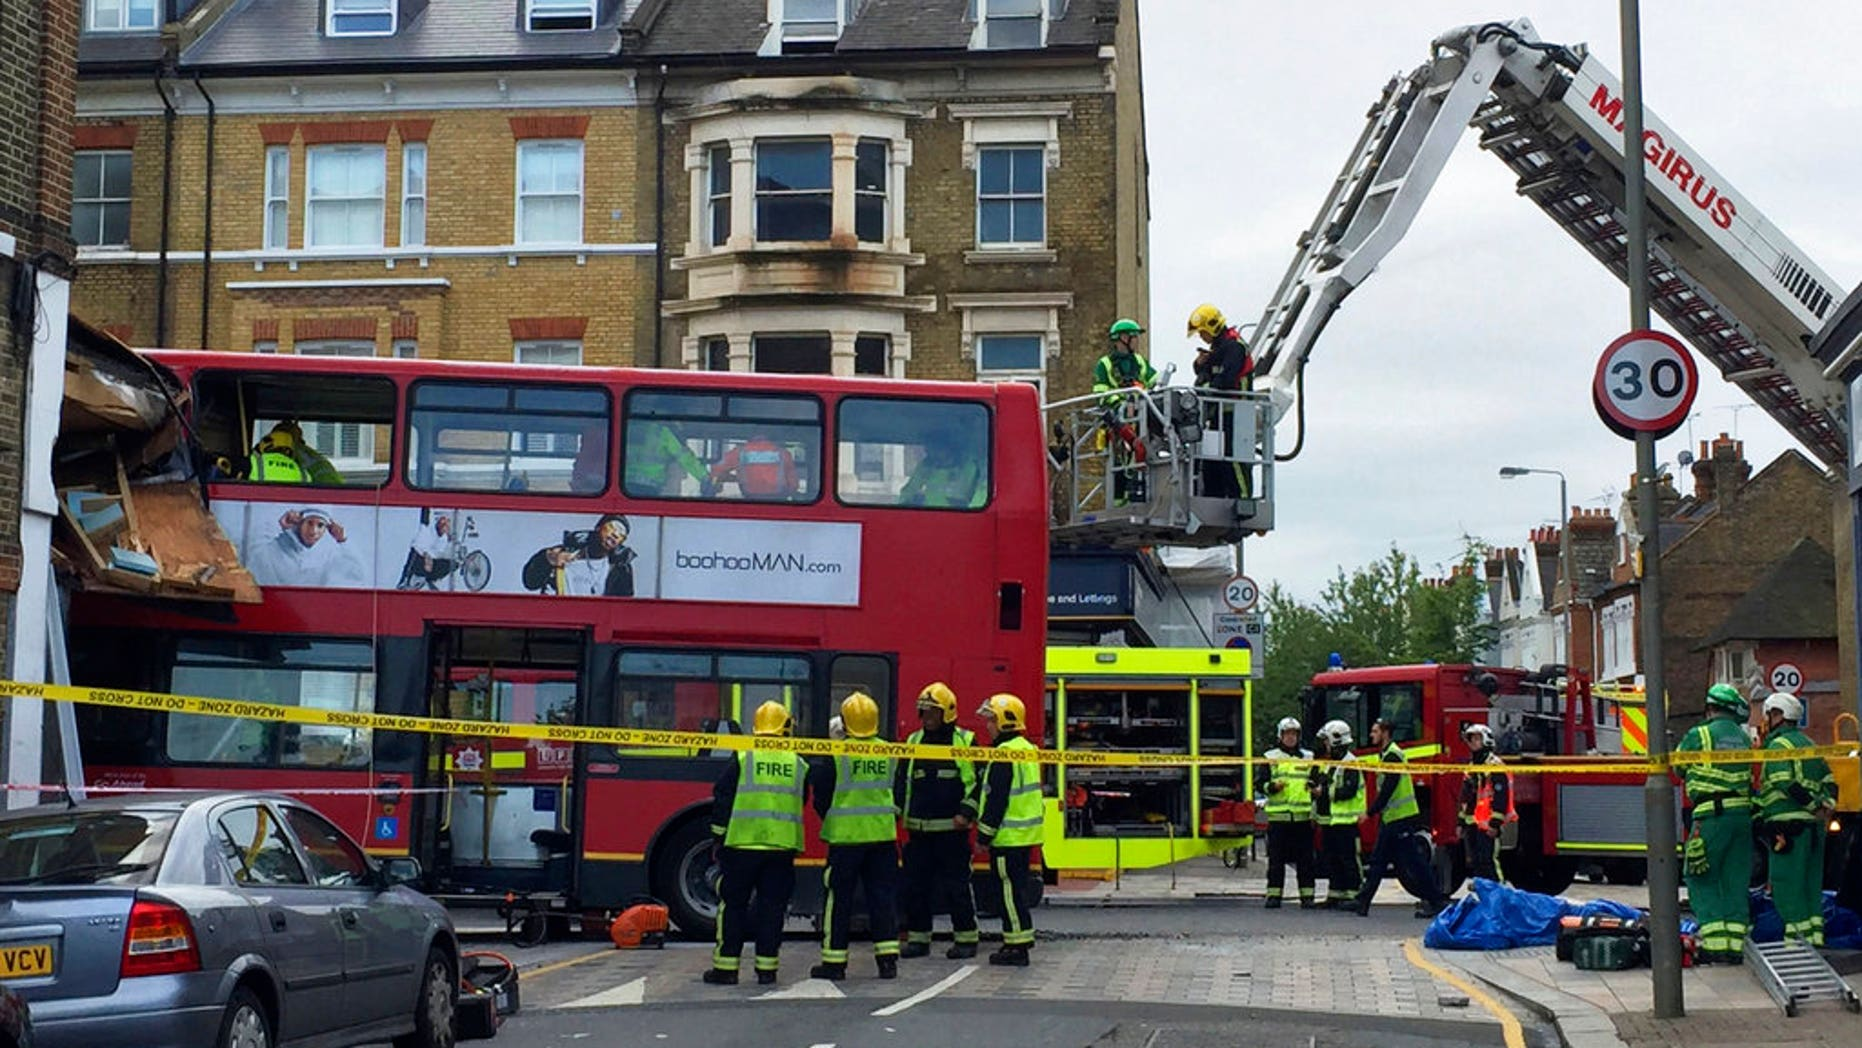 At least 10 people were injured in a London bus crash.